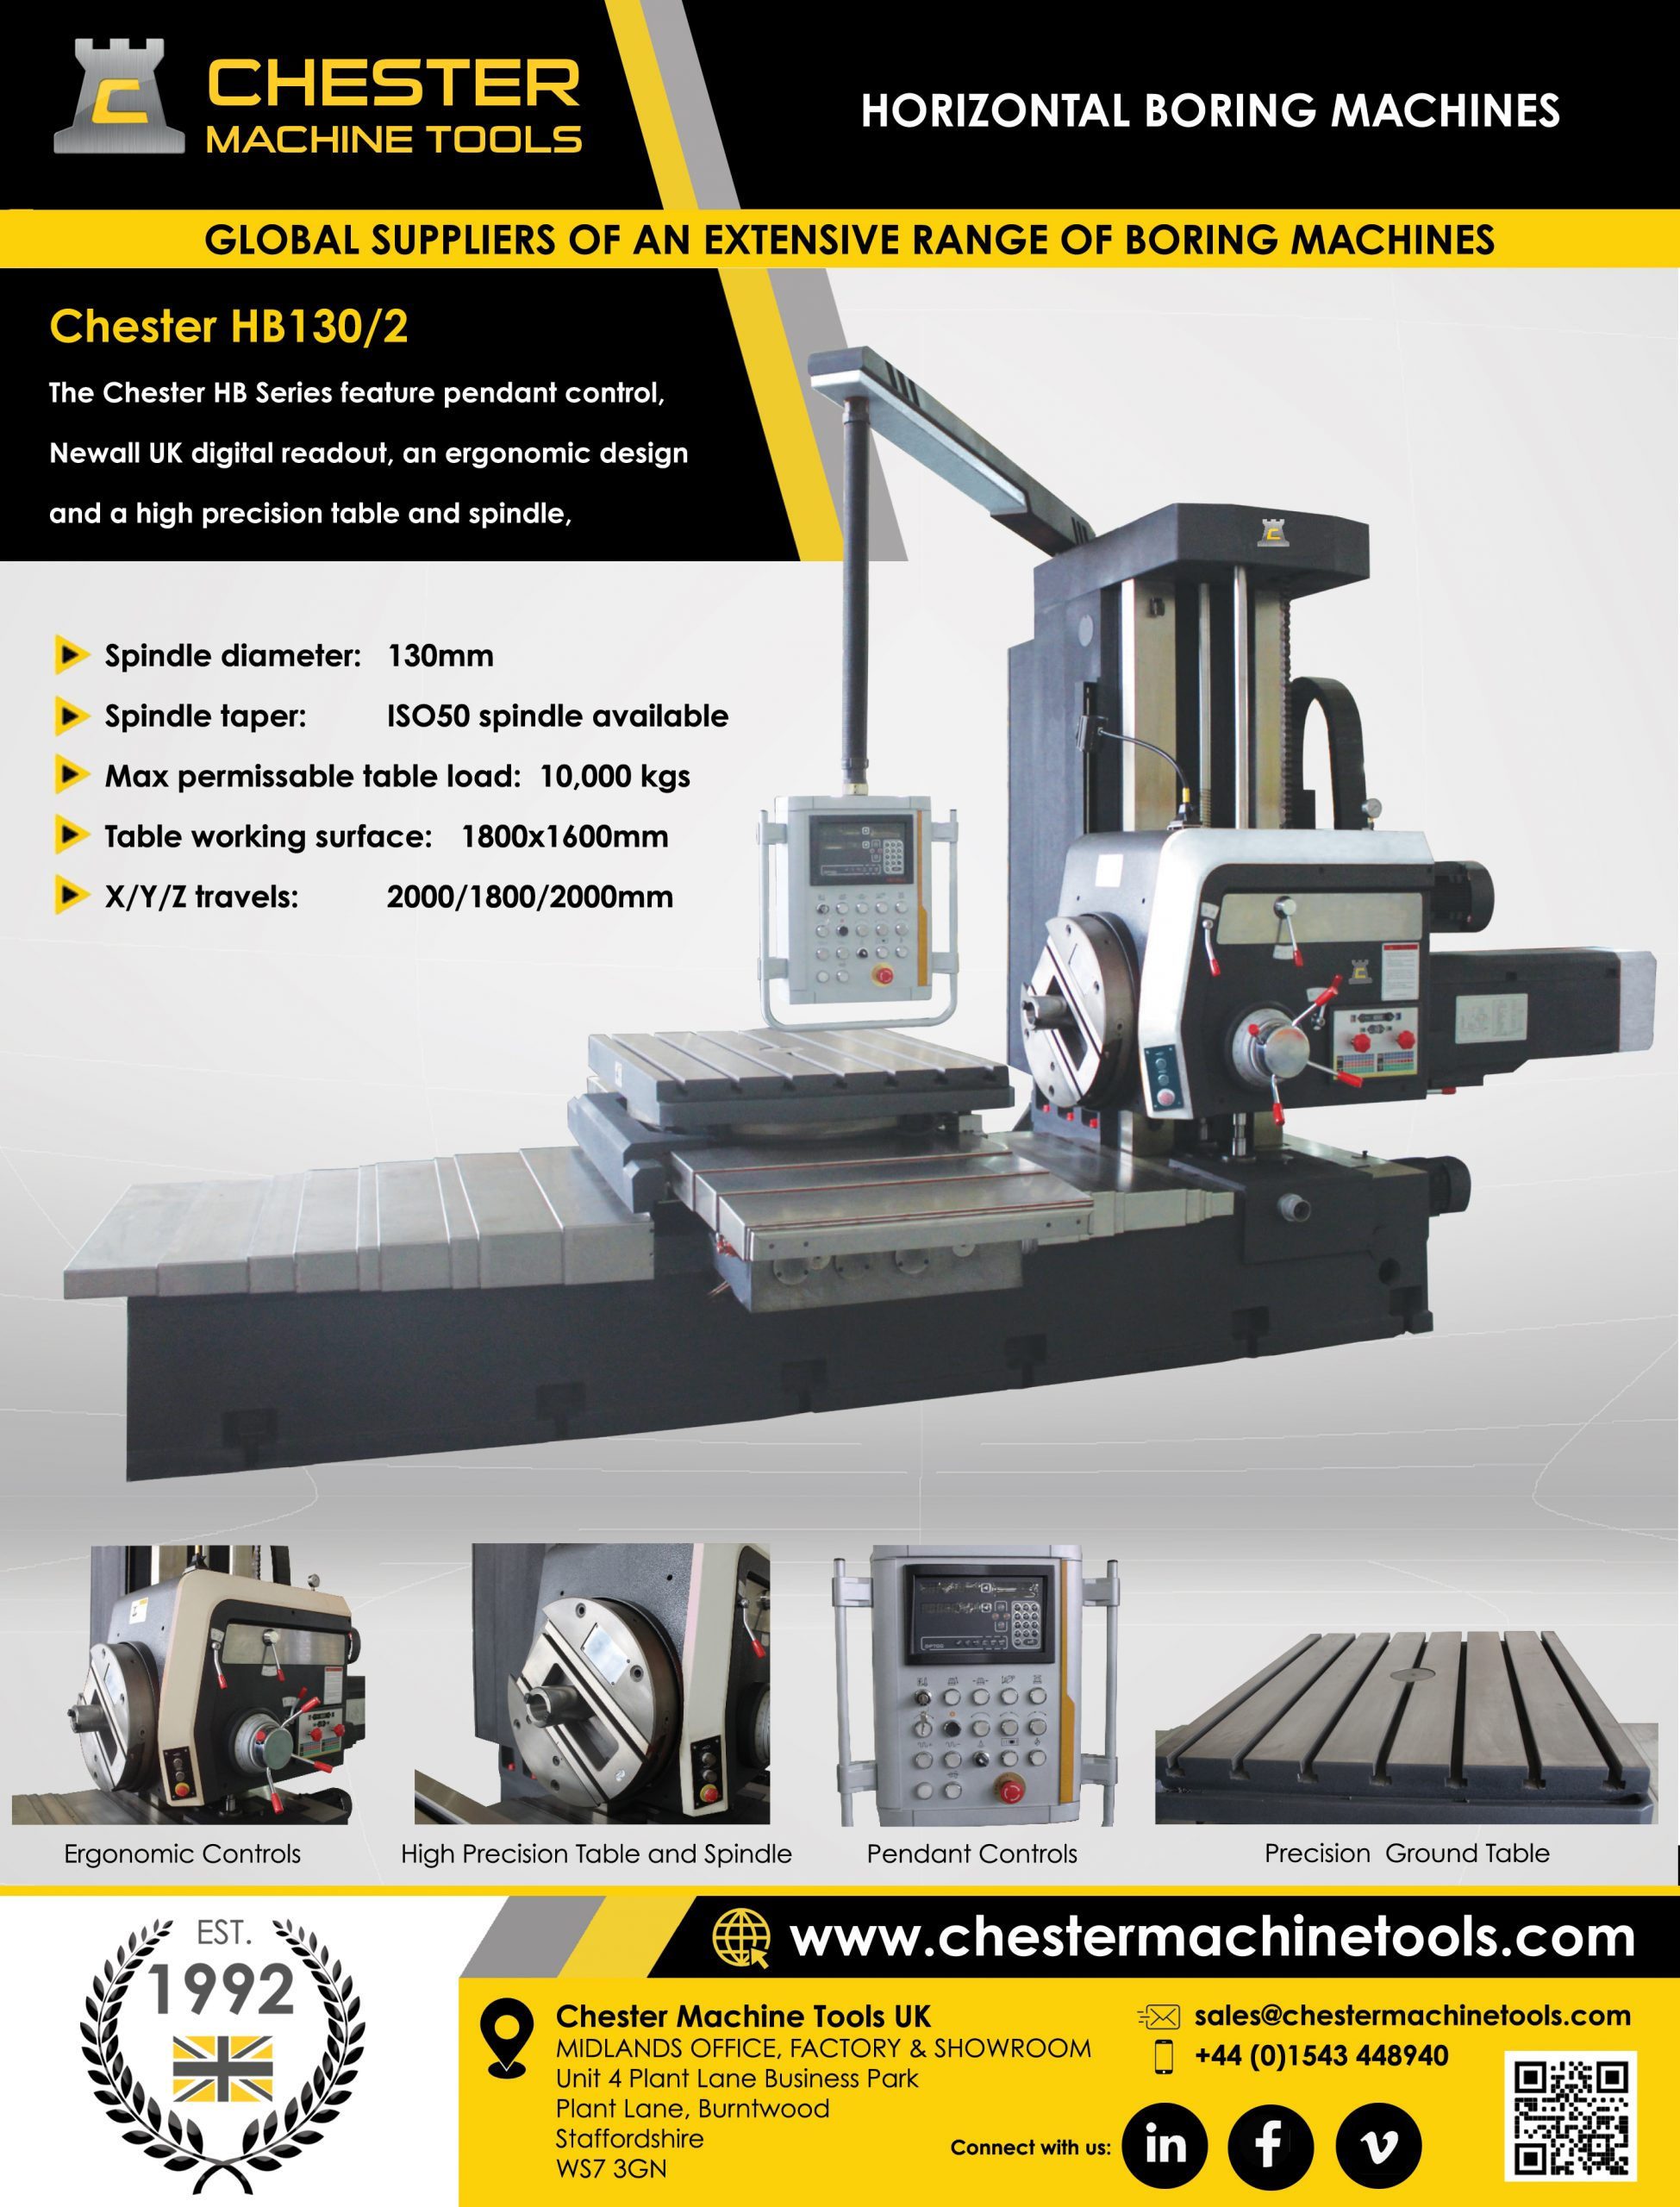 Global Suppliers of High Precision Boring Machines